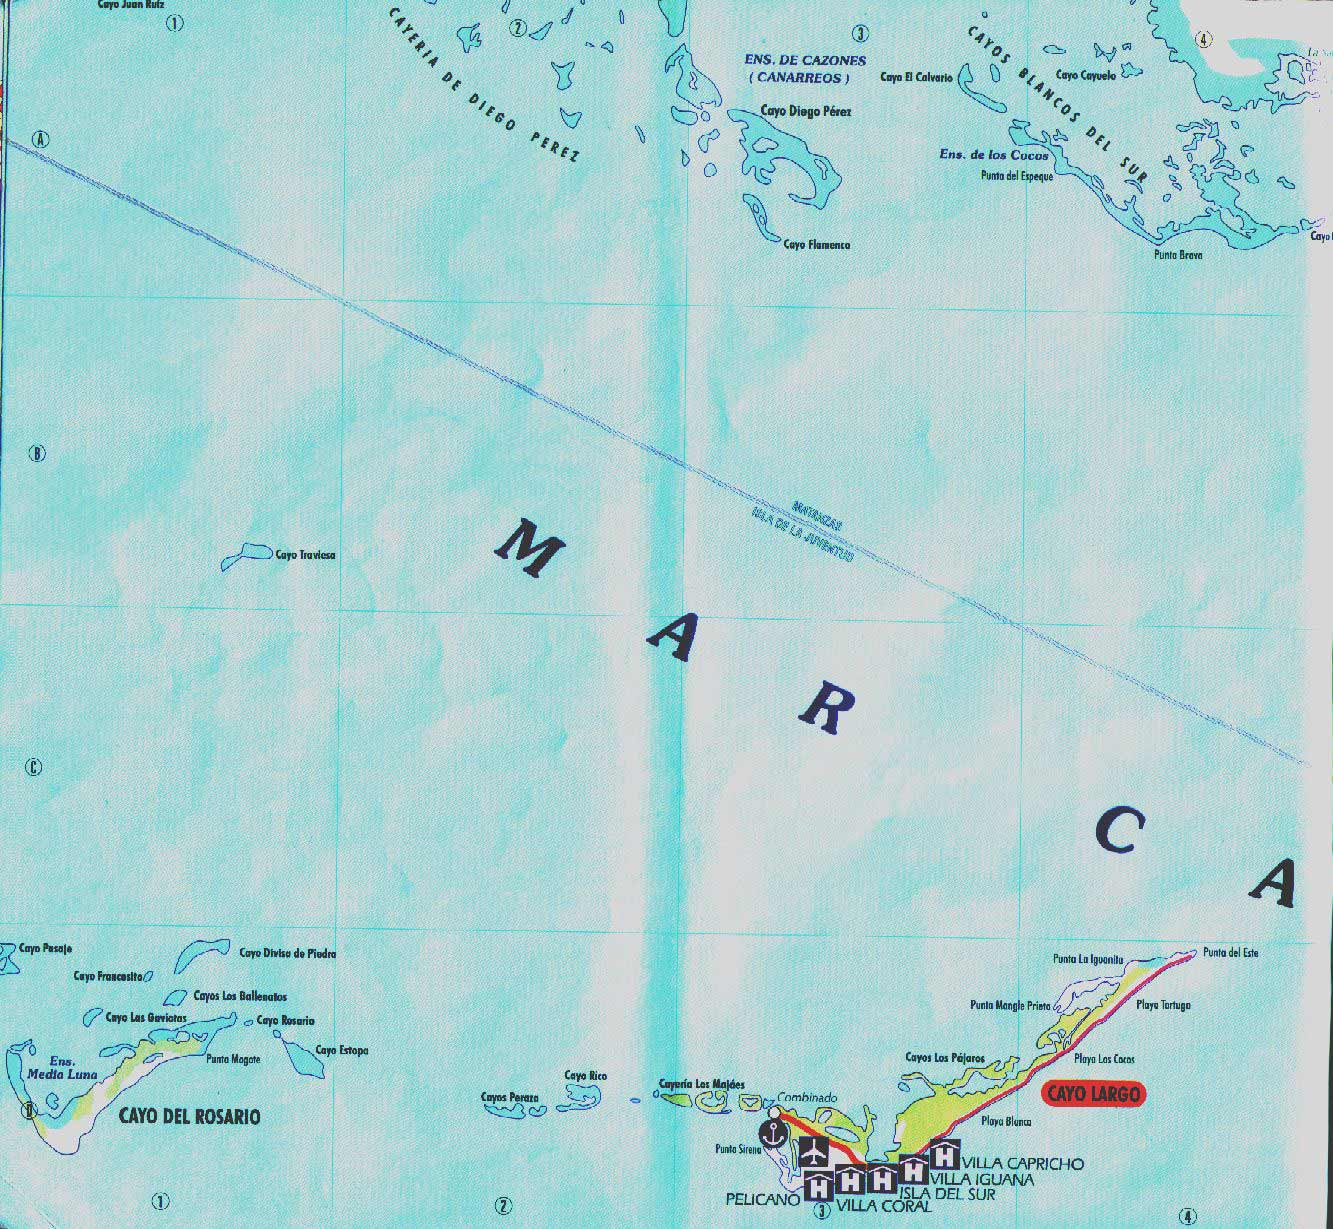 Map of Cayo Largo large map